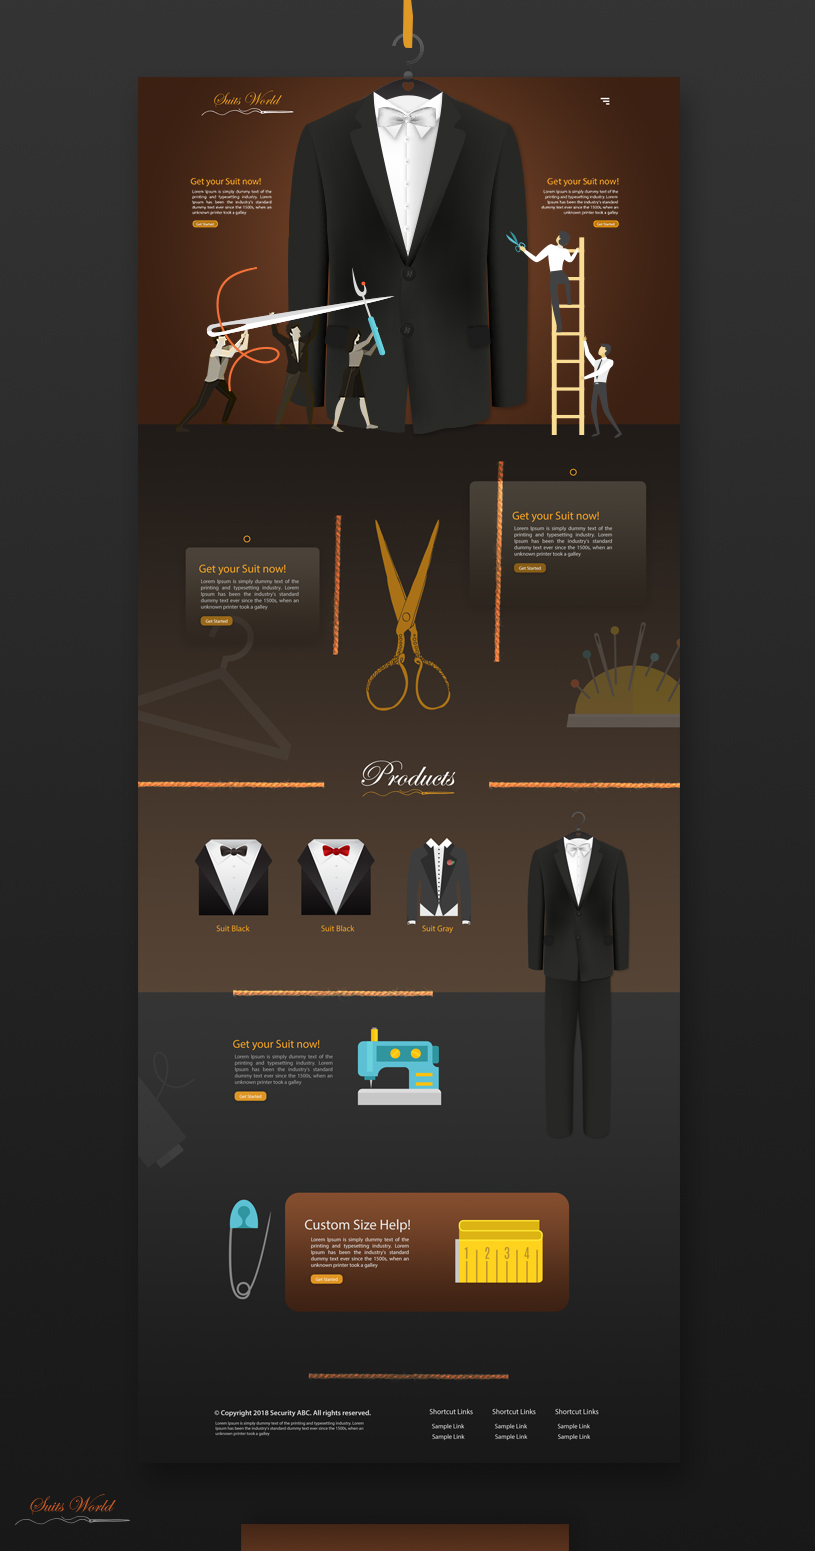 tailor-website-design-waleedsayed2